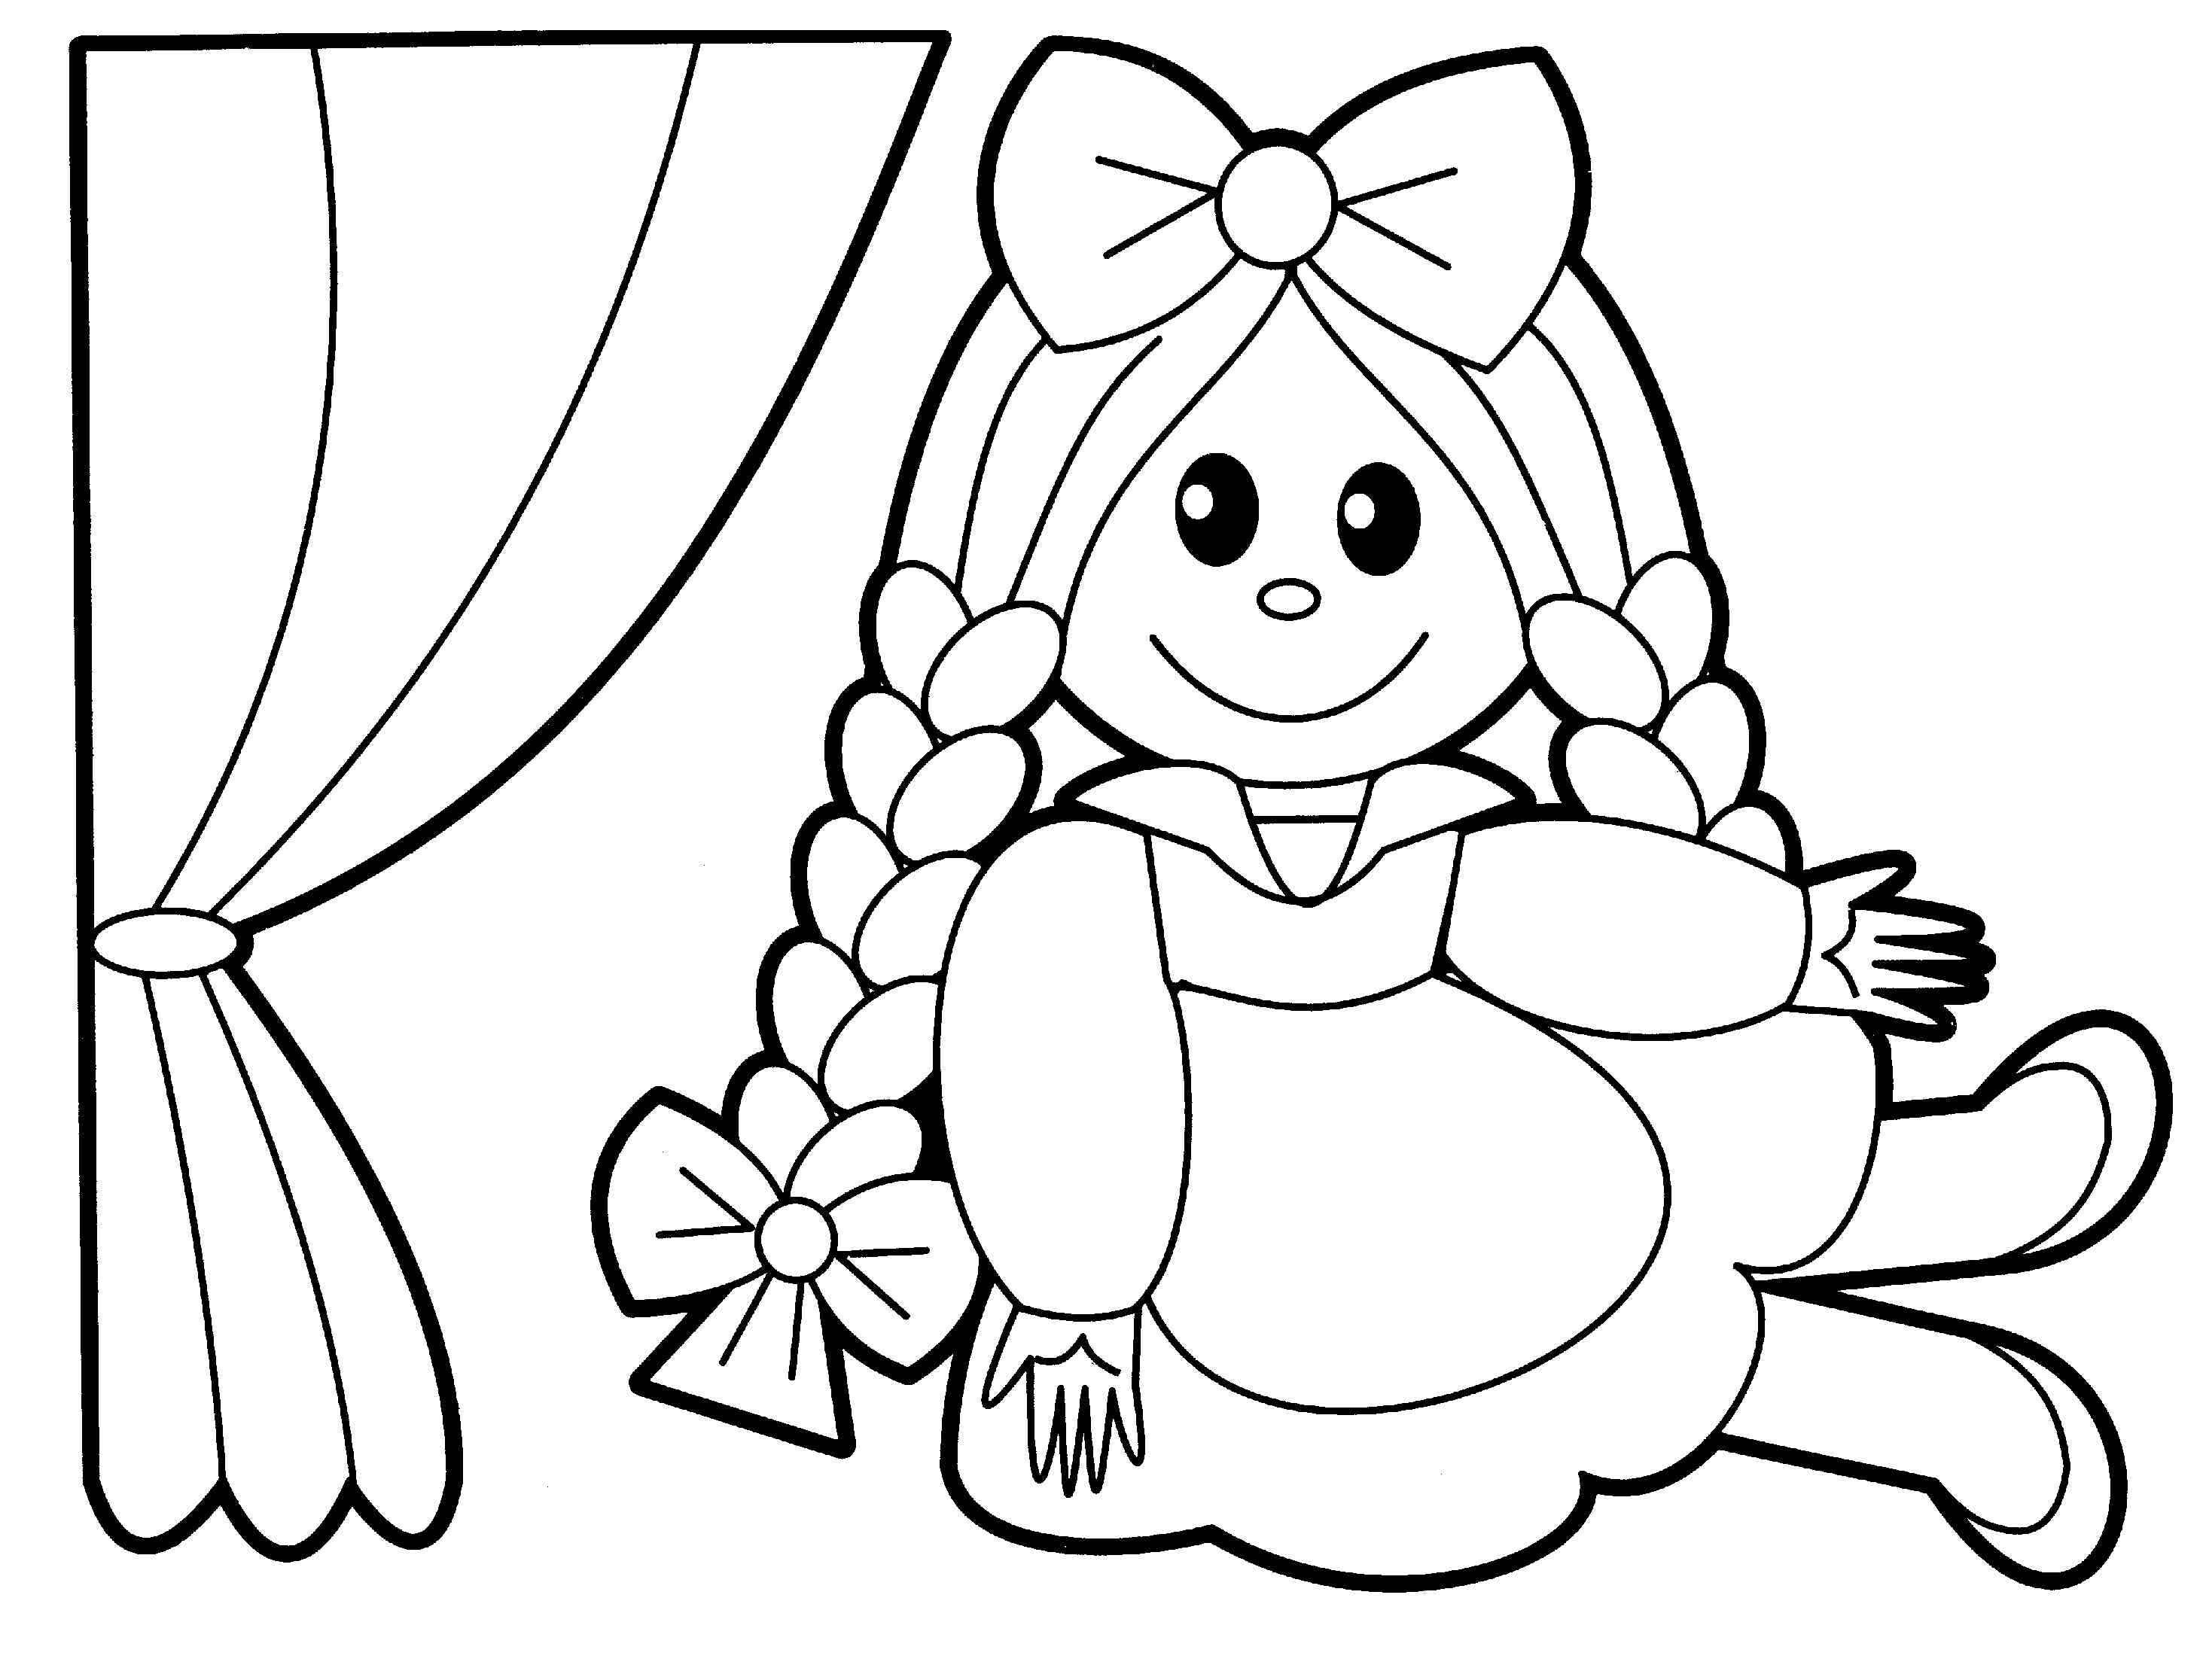 toys coloring pages for babies 20 next image toys coloring